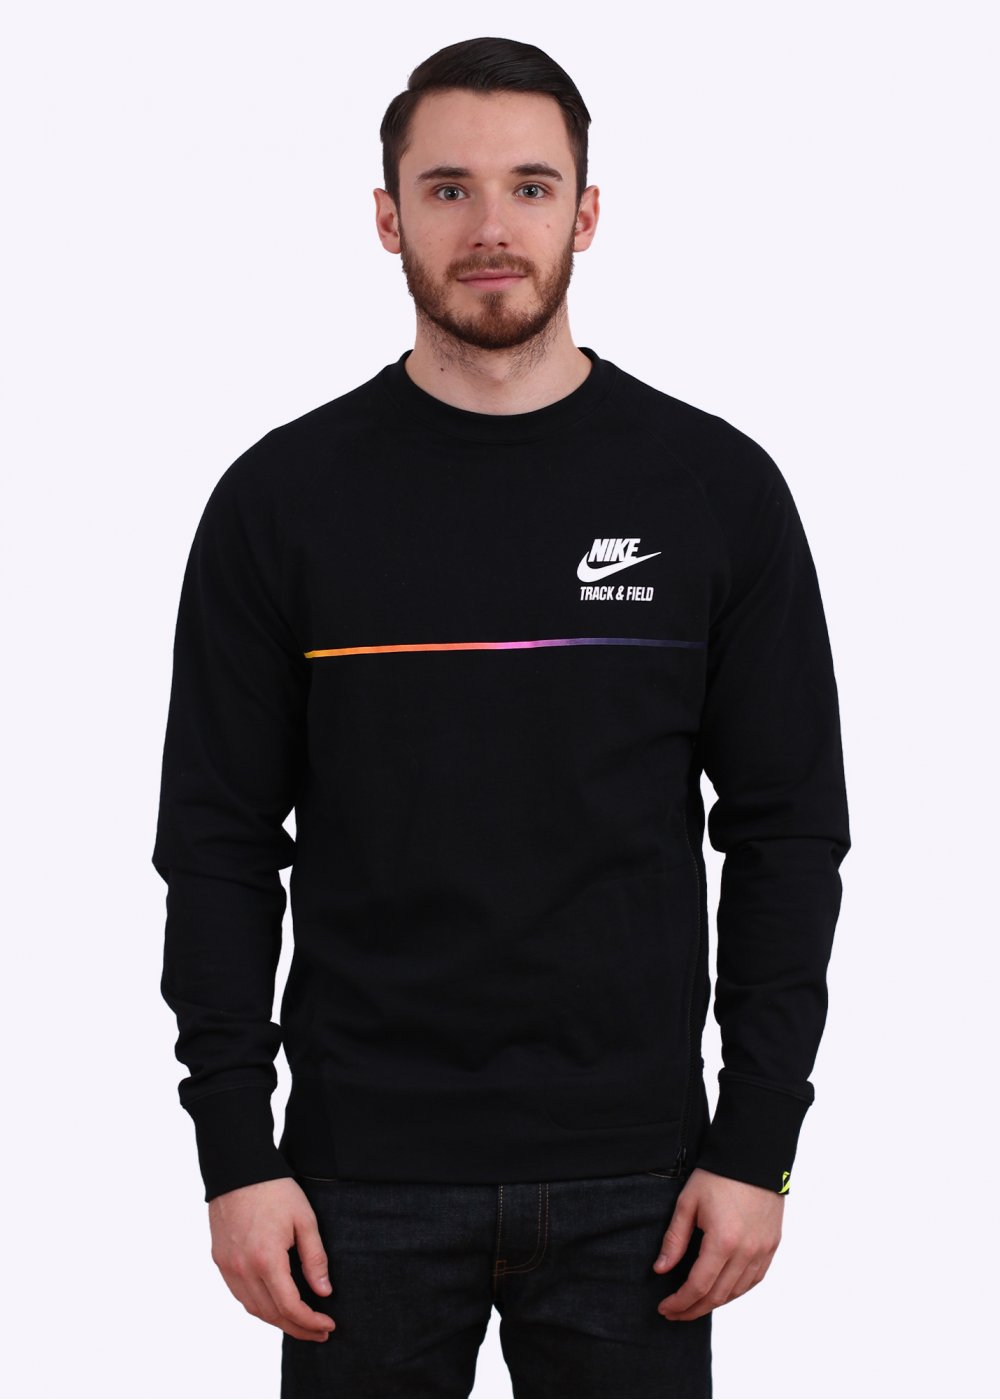 Nike Apparel RU NTF Crew Sweatshirt Black